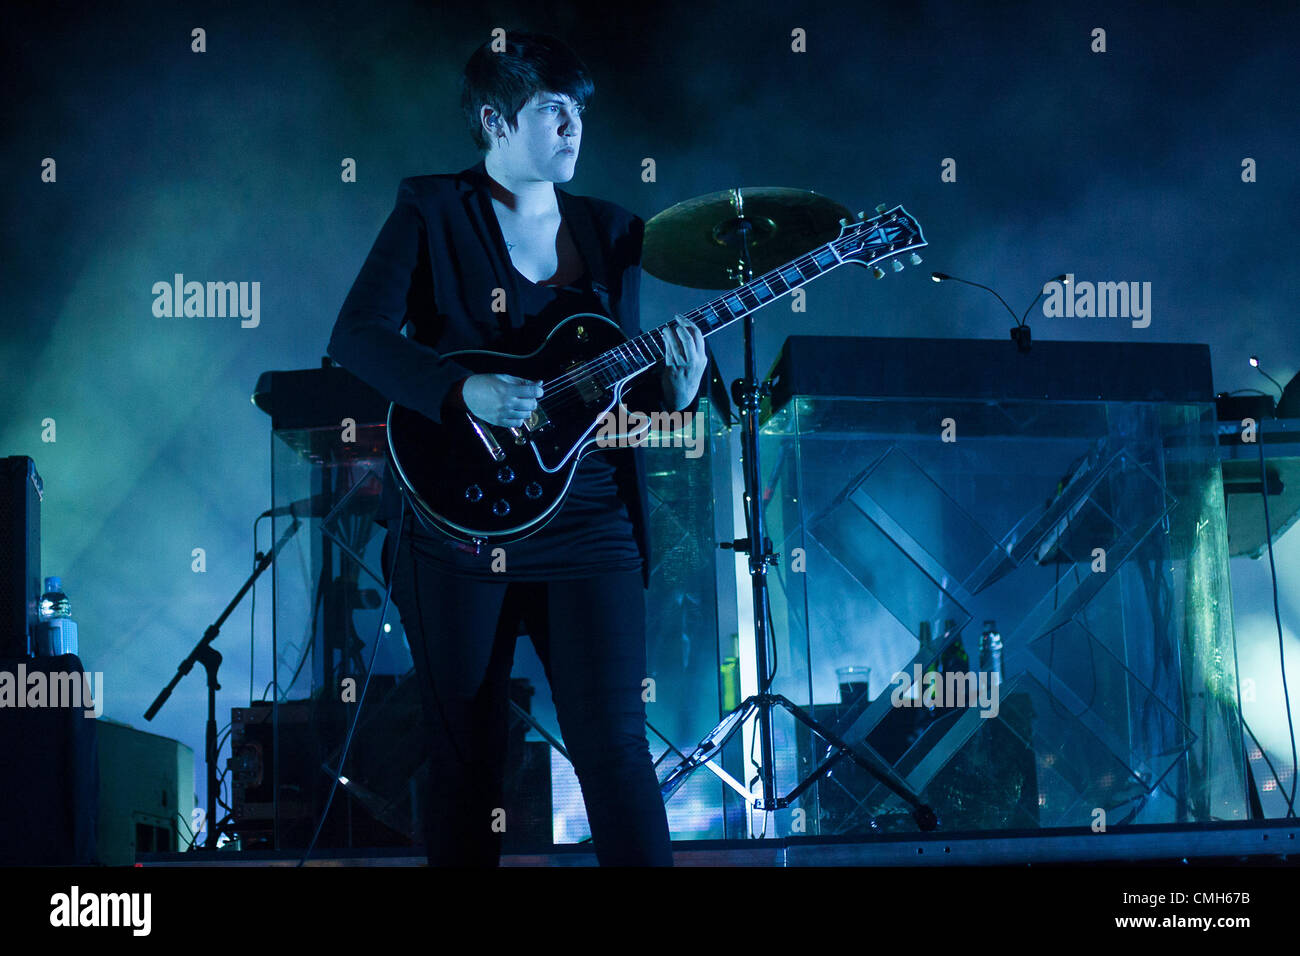 SIBENIK, CROATIA, Thursday, August 9, 2012. The XX perform at the Terraneo Summer Eco Music Festival in Sibenik, - Stock Image